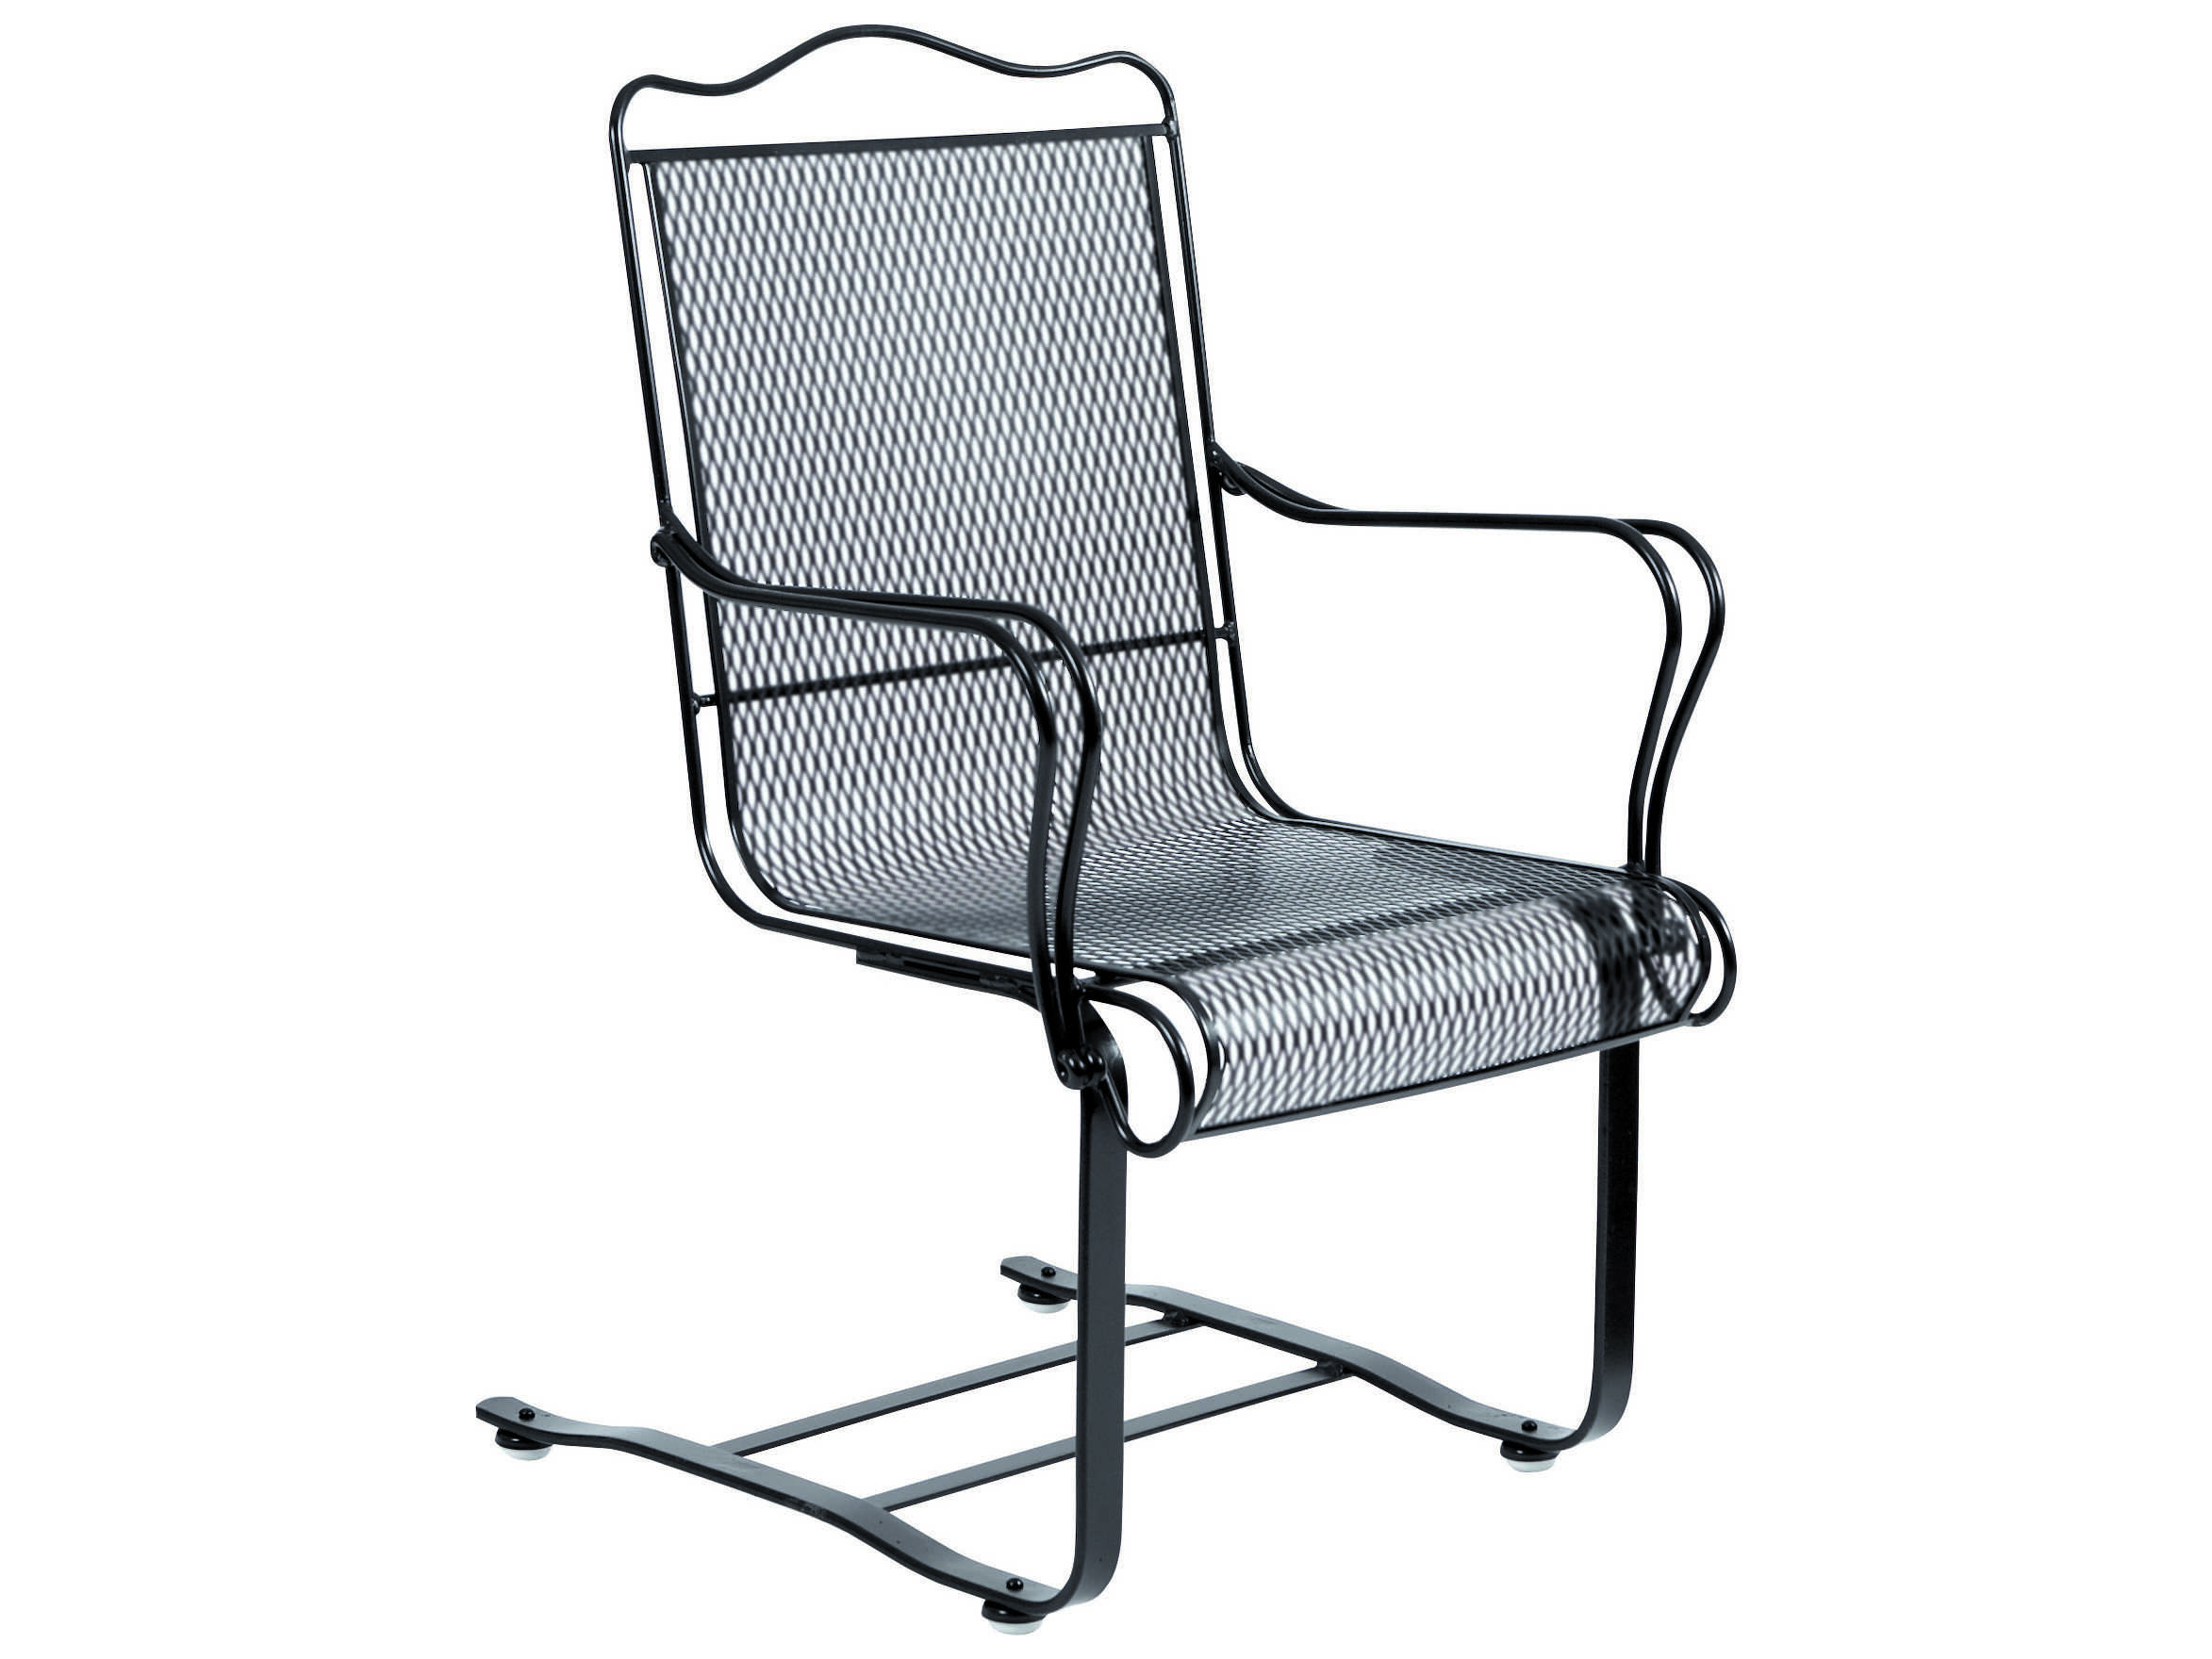 Mesh Patio Chairs Woodard Tucson Wrought Iron High Back Spring Dining Chair